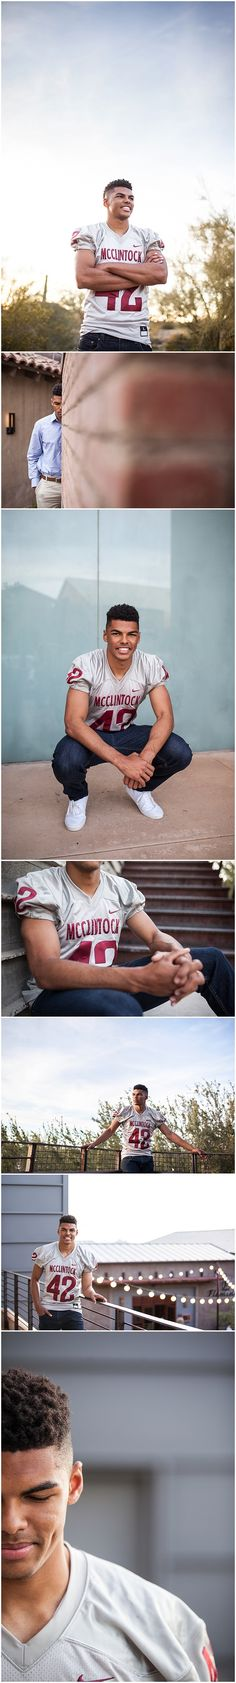 Senior boy portraits industrial desert high school senior pictures with football jersey